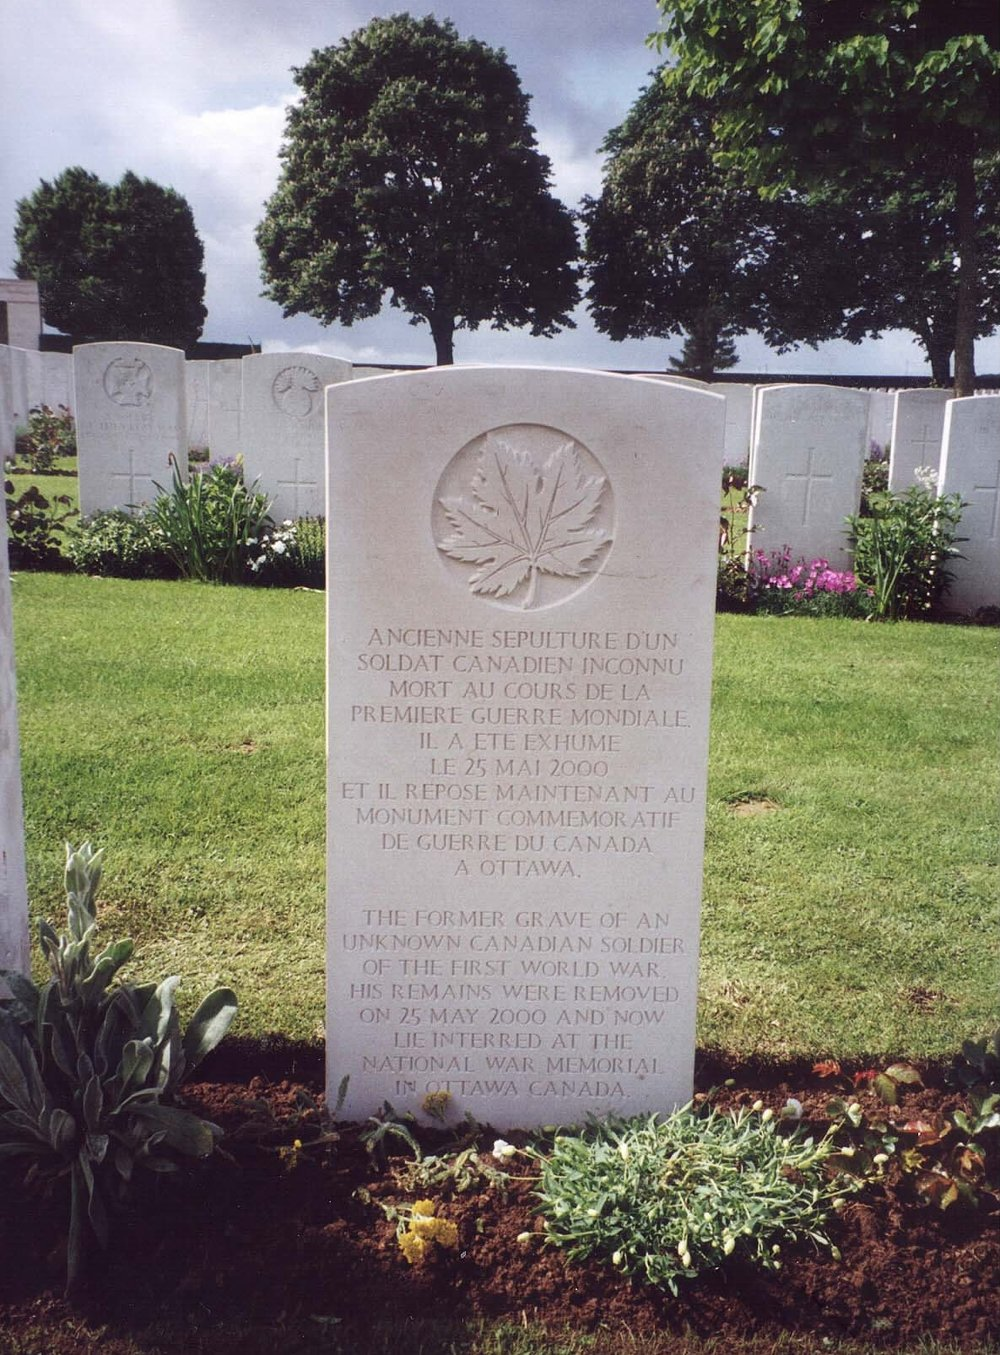 Unique headstone marking the original resting place of the Canadian Unknown Soldier. © CWGC